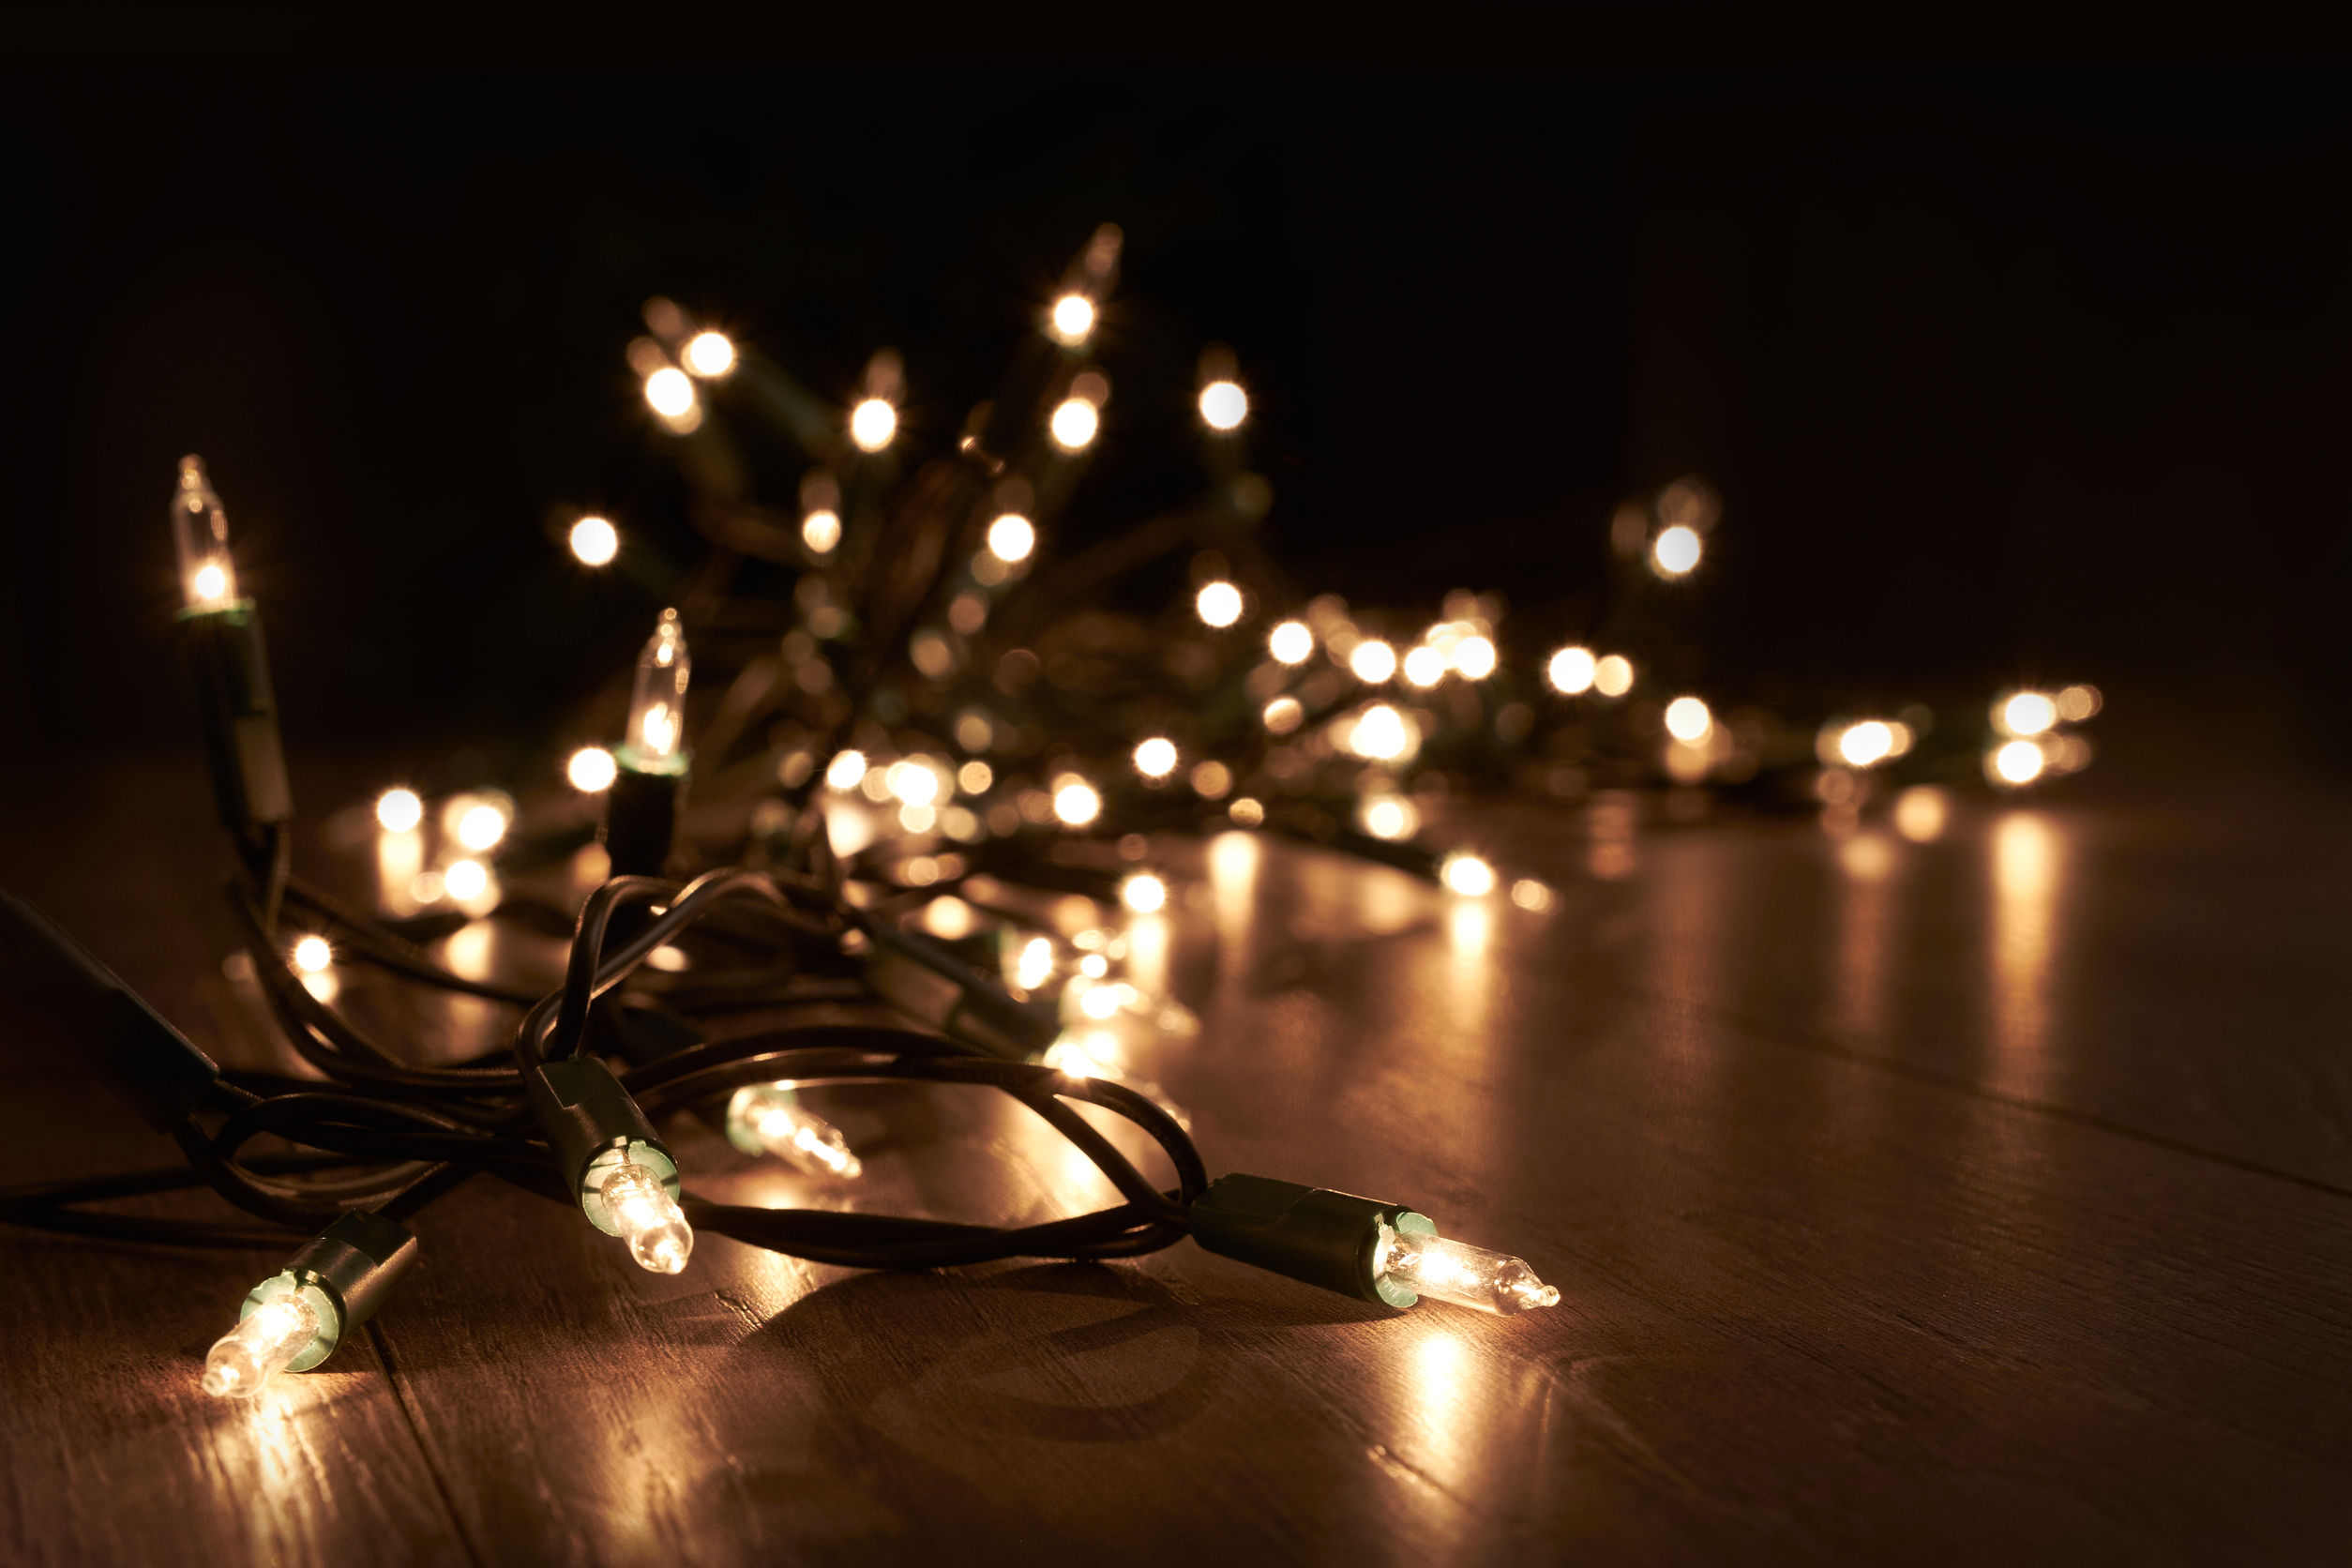 Traditional Christmas Tree lights lying on a wooden floor